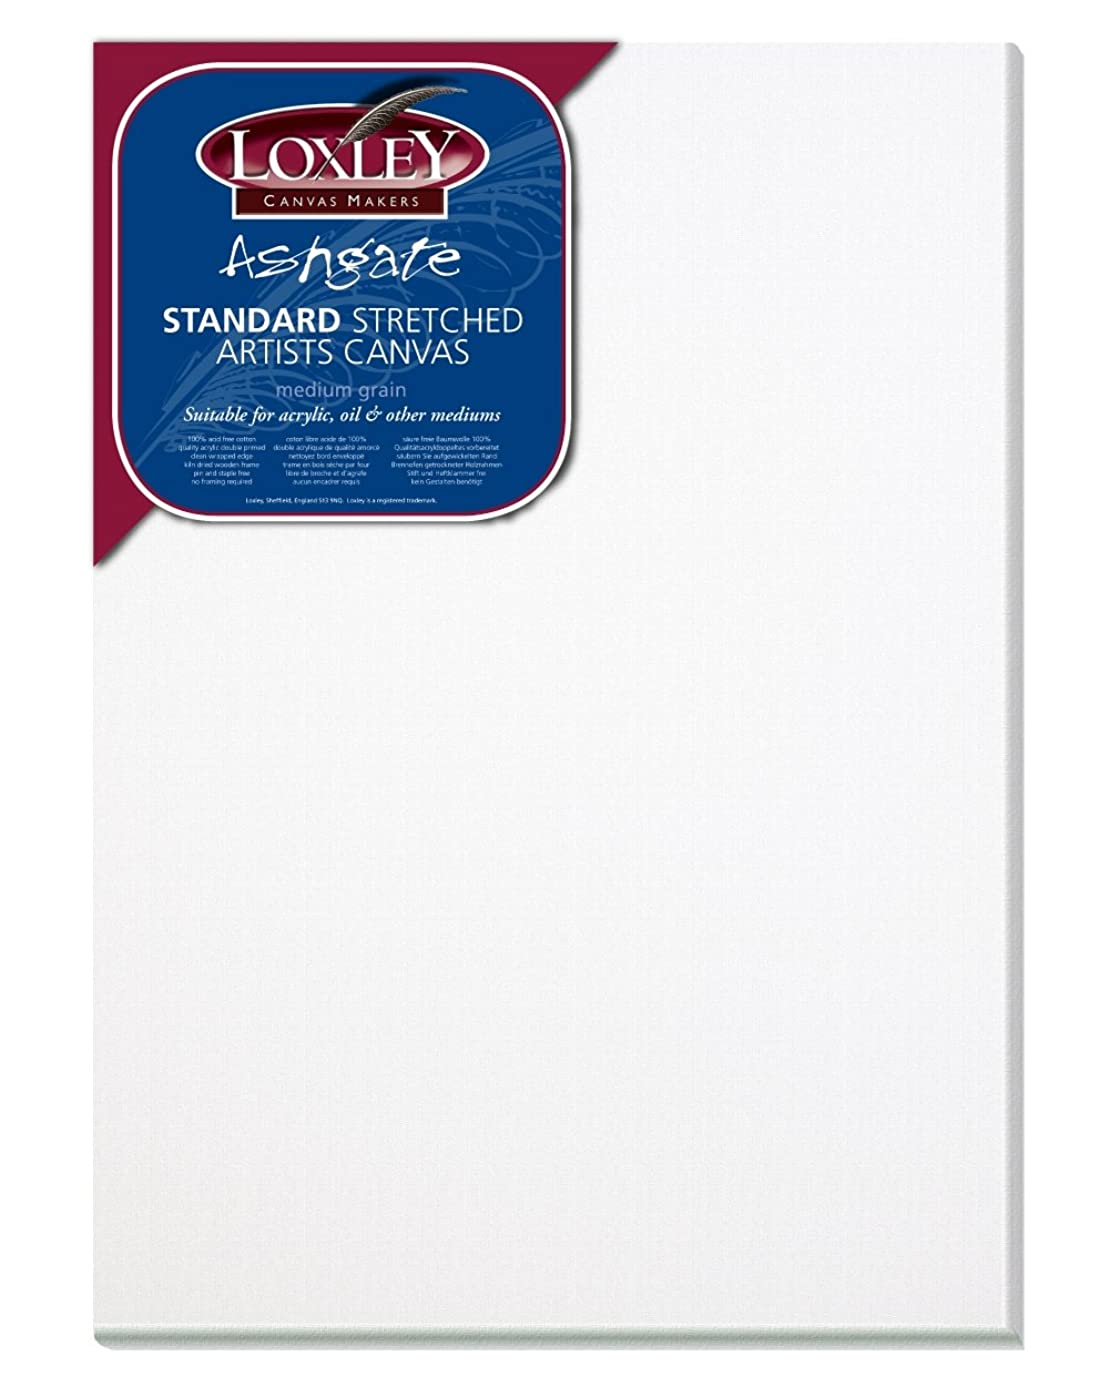 Loxley 14 x 10-inch Traditional 18 mm Depth Ashgate Stretched Artists Canvas, White by Loxley